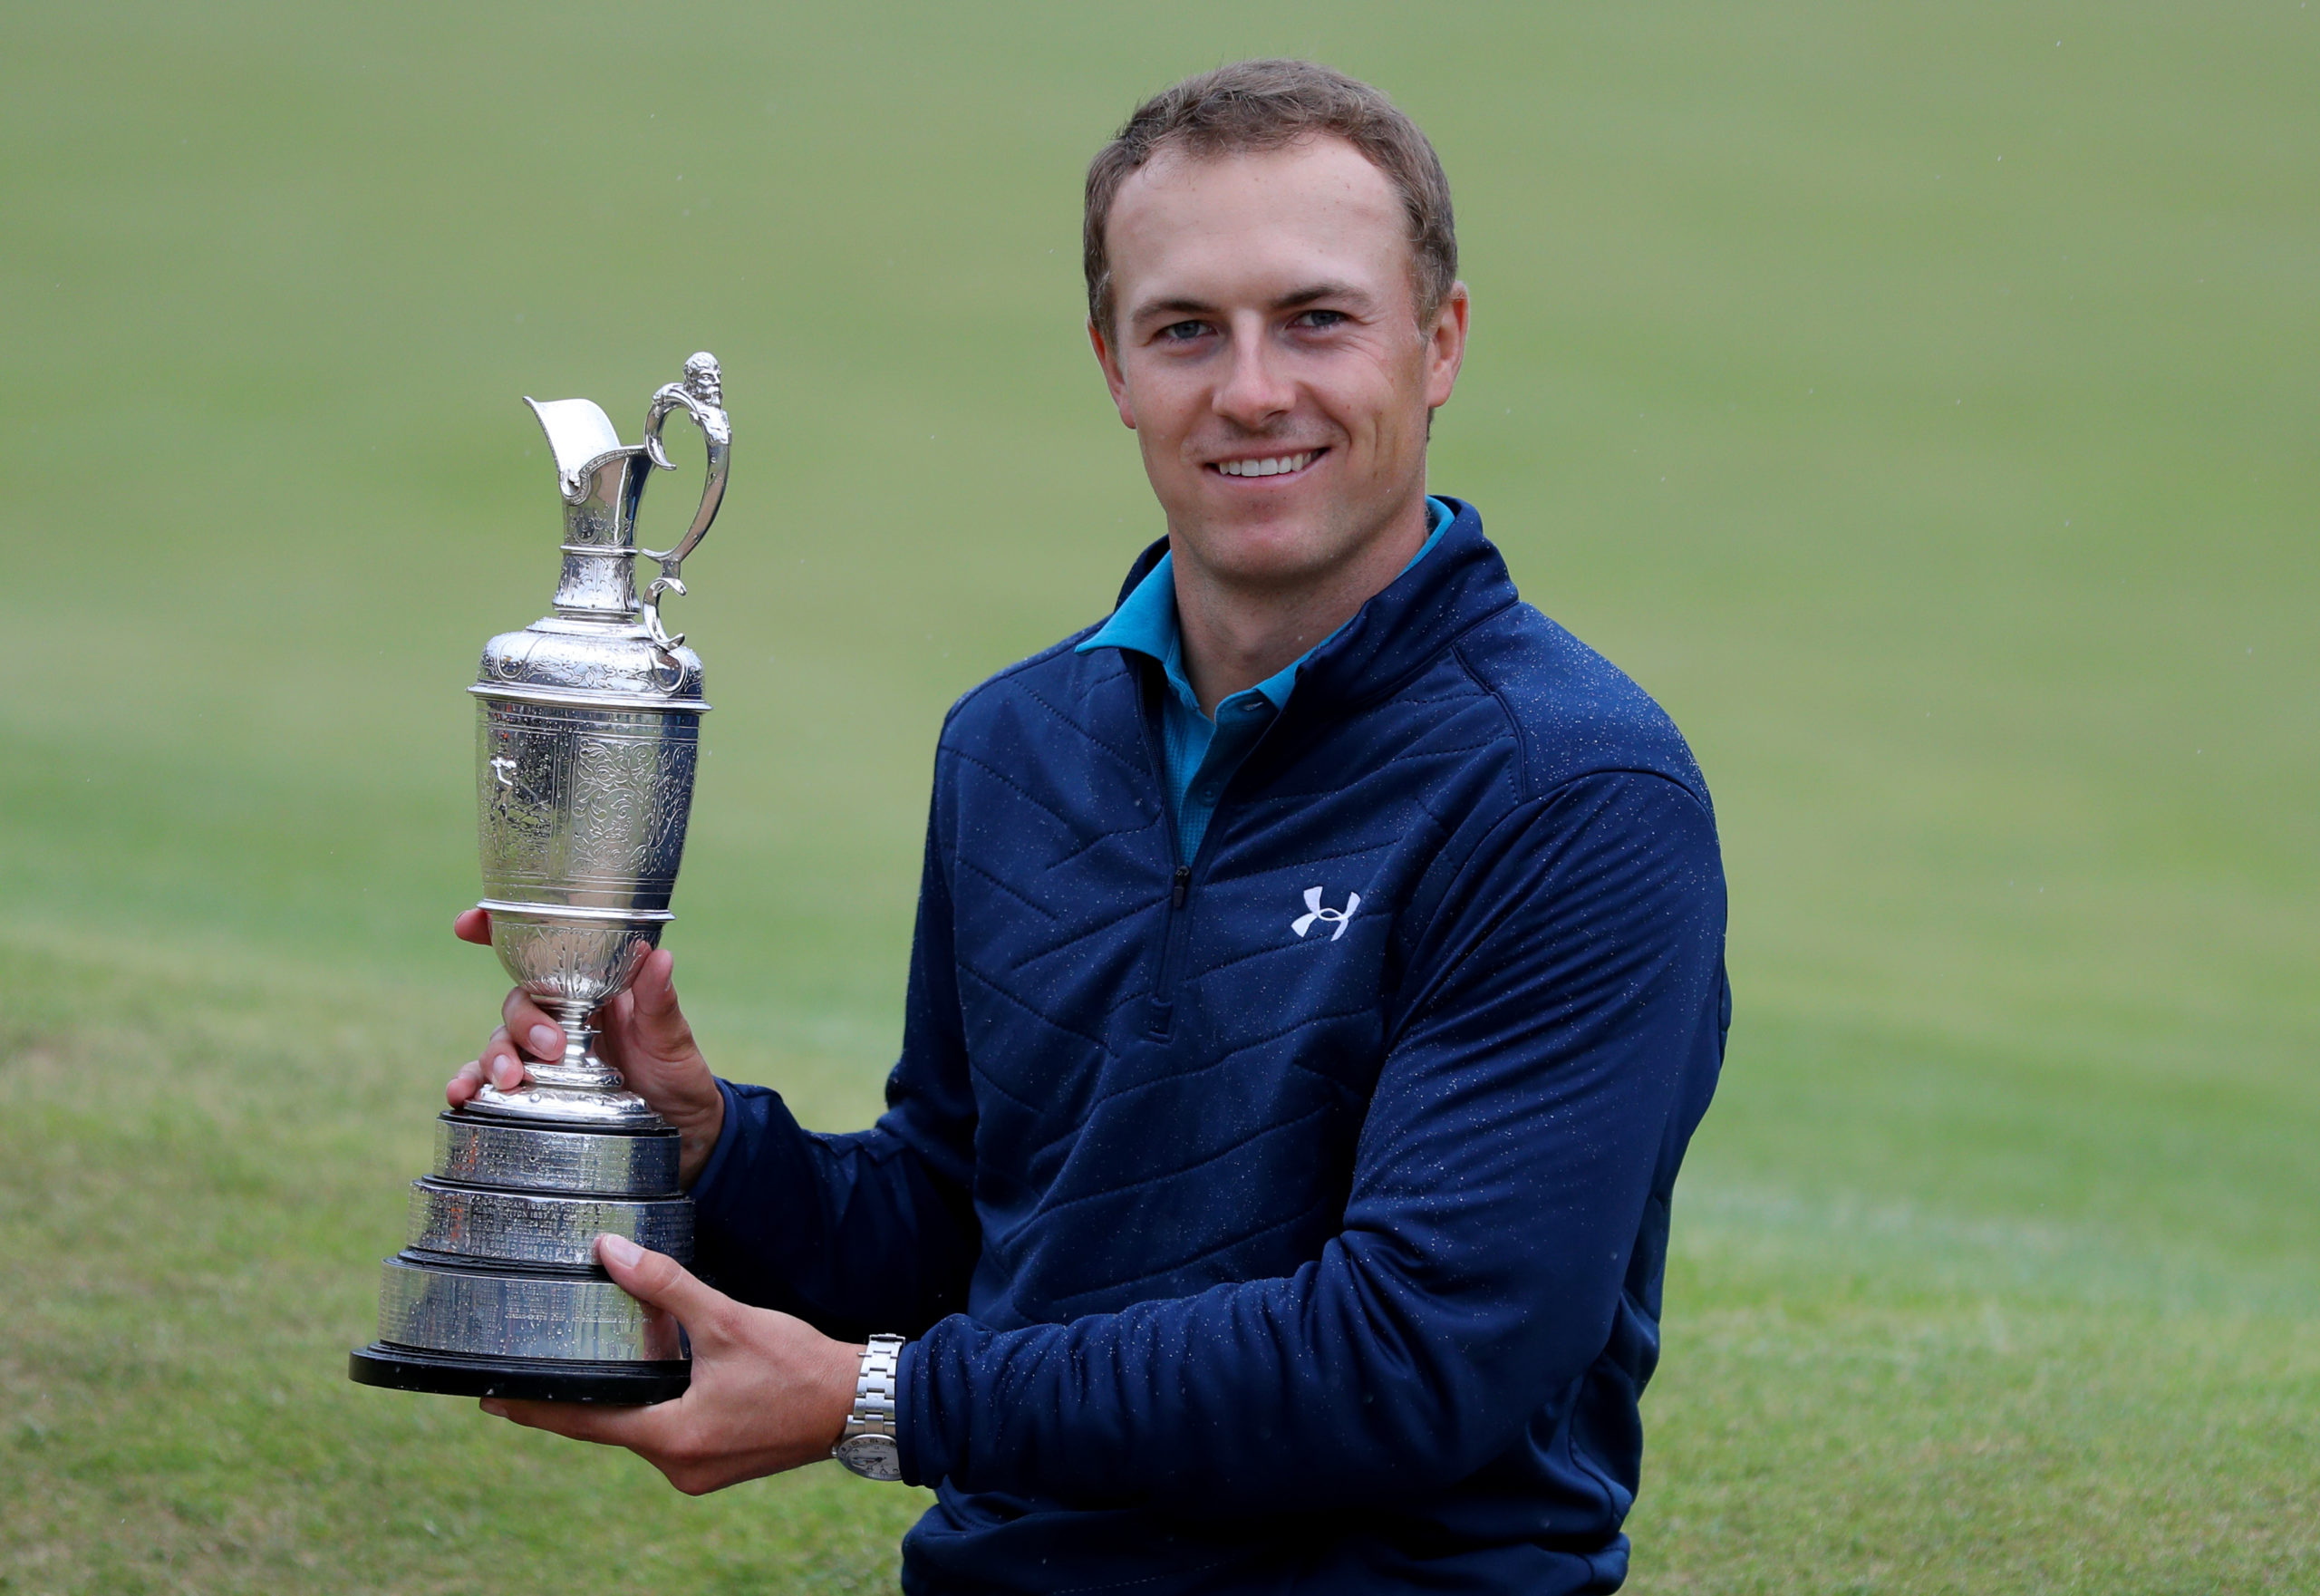 Jordan Spieth lifts Claret Jug at Royal Birkdale